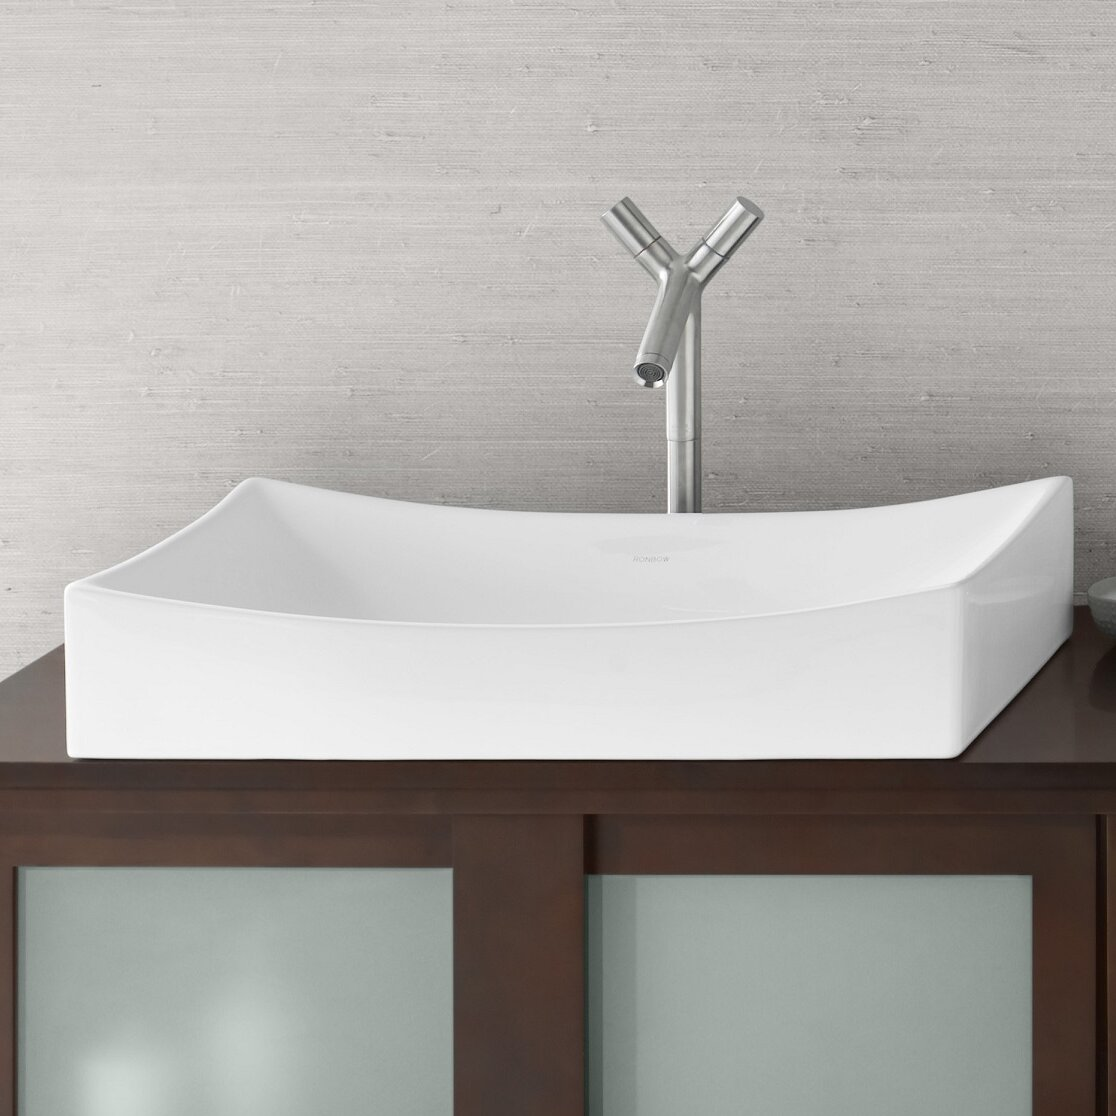 Rectangular Bathroom Sinks Ronbow Status Rectangular Vessel Bathroom Sink Reviews Wayfair